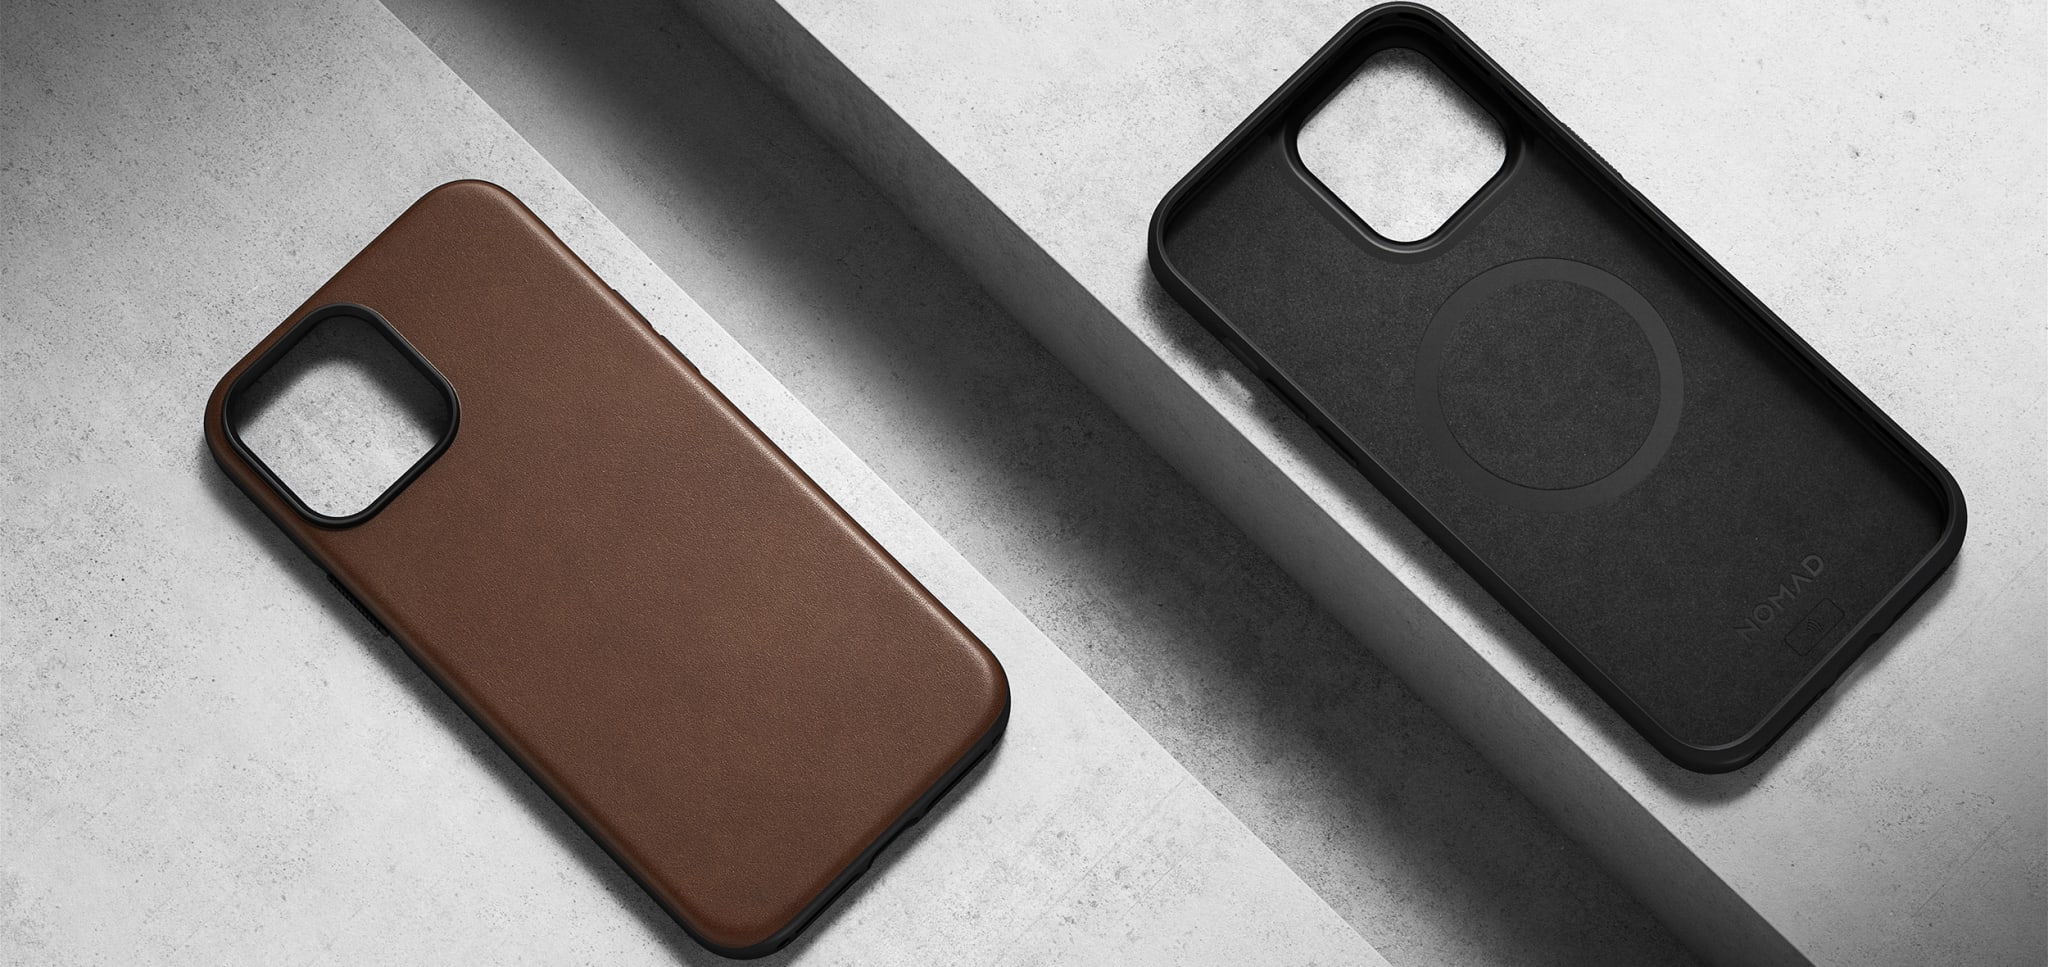 Best iPhone 13 Cases Nomad Modern Leather Case